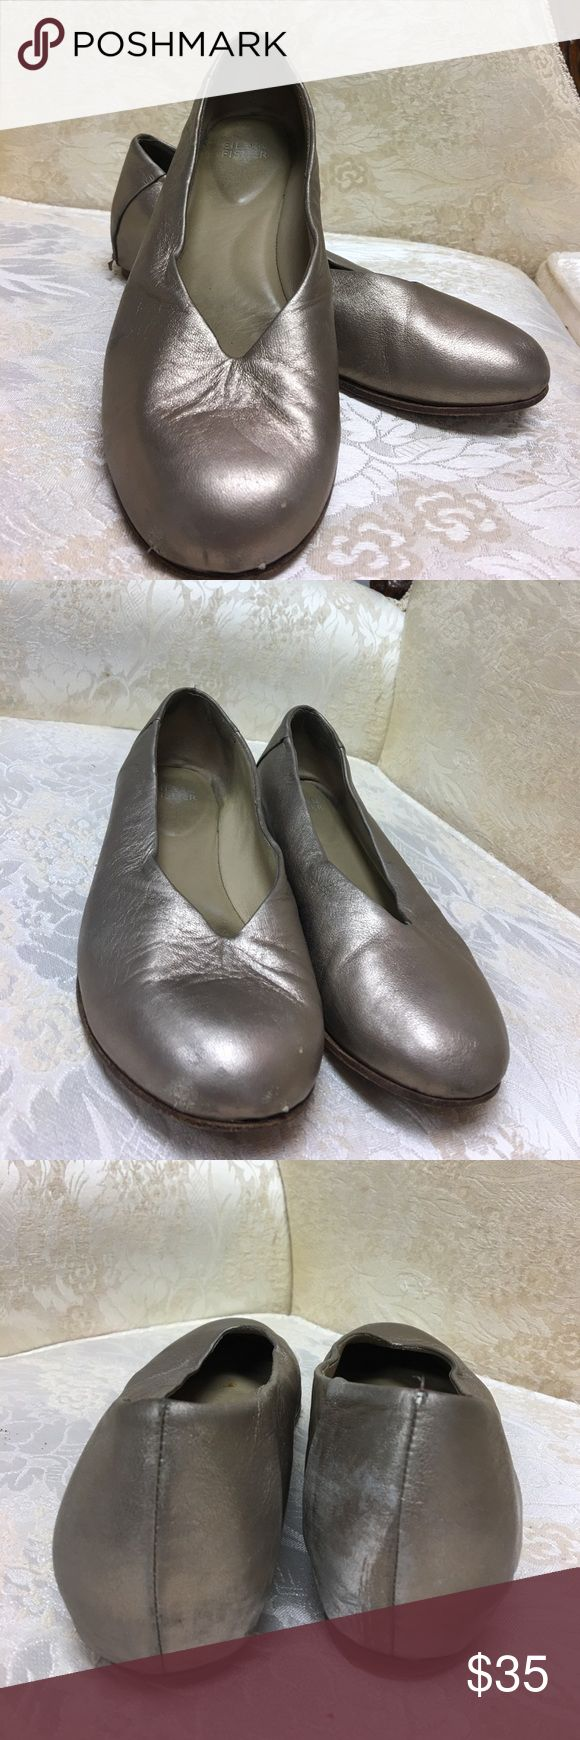 Eileen Fisher Gold Ballet Flats size 7 1/2 Gold Ballet Flats. Fair condition. Several scuffs 7 1/2 Eileen Fisher Shoes Flats & Loafers